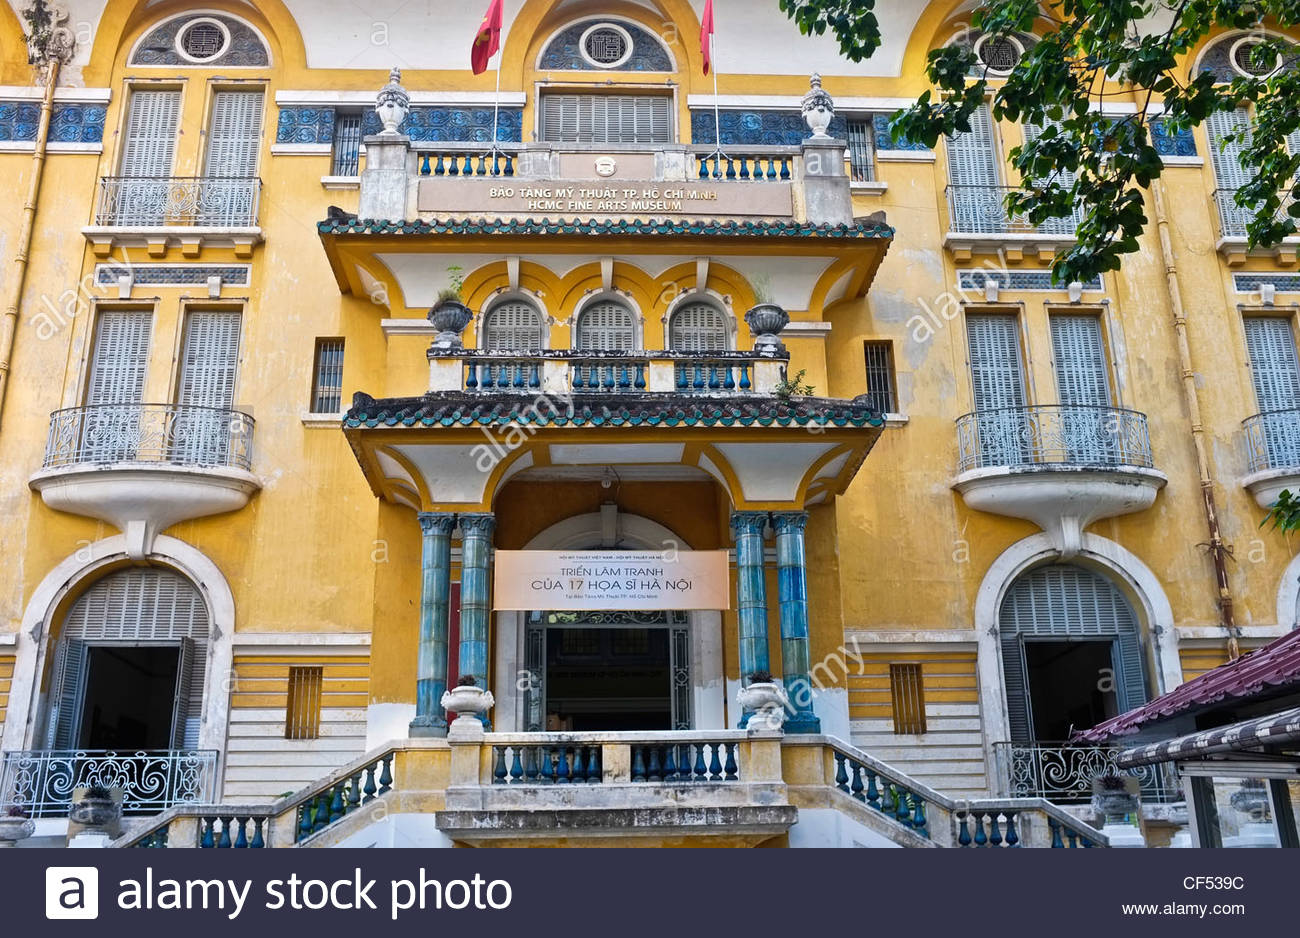 Ho Chi Minh City Fine Arts Museum Ho Chi Minh City, Fine Arts Museum, Ho Chi Minh City, Vietnam Stock Photo, Royalty ...